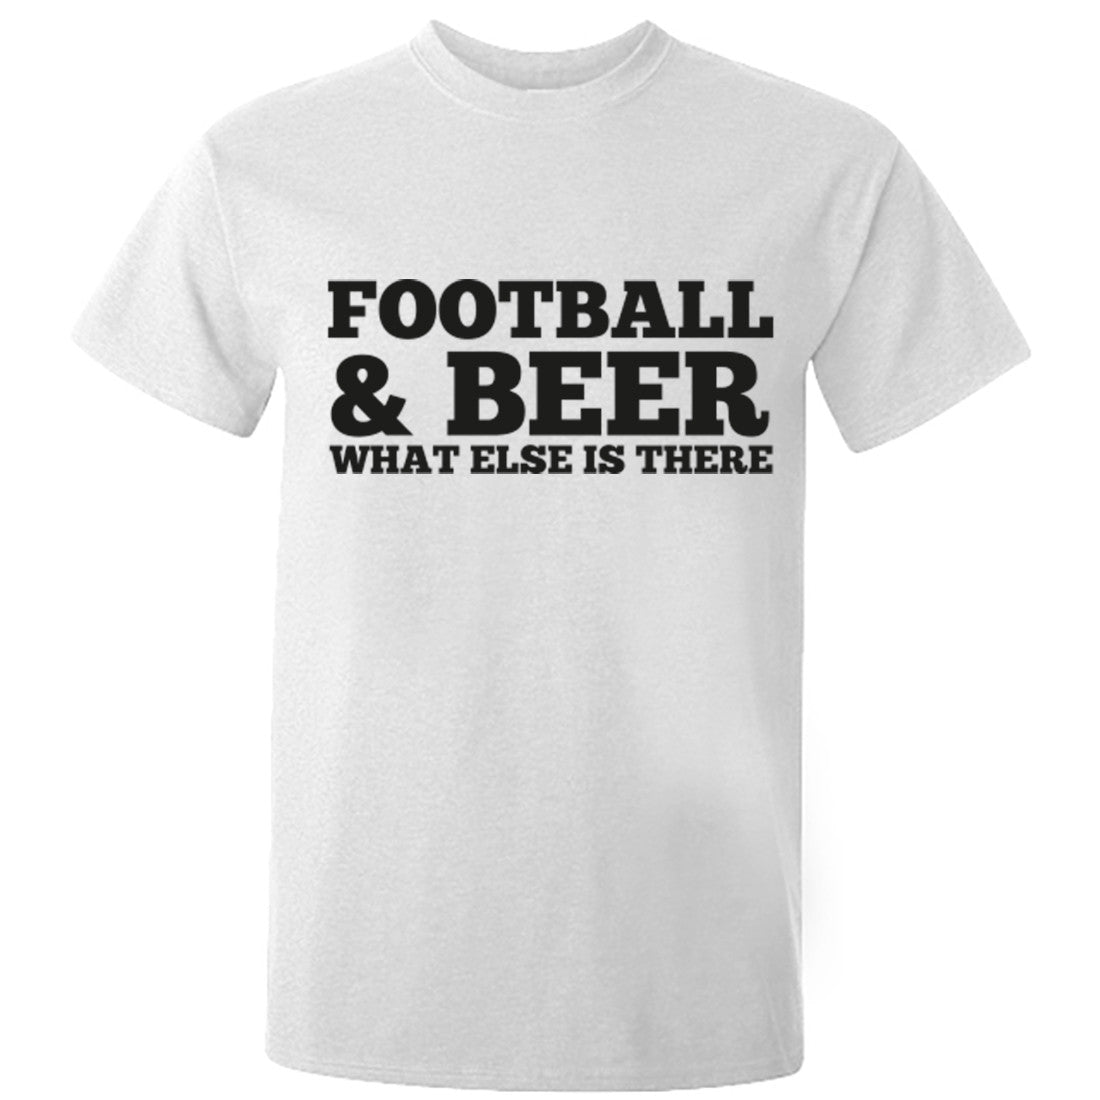 Football And Beer What Else Is There Unisex Fit T-Shirt K0670 - Illustrated Identity Ltd.